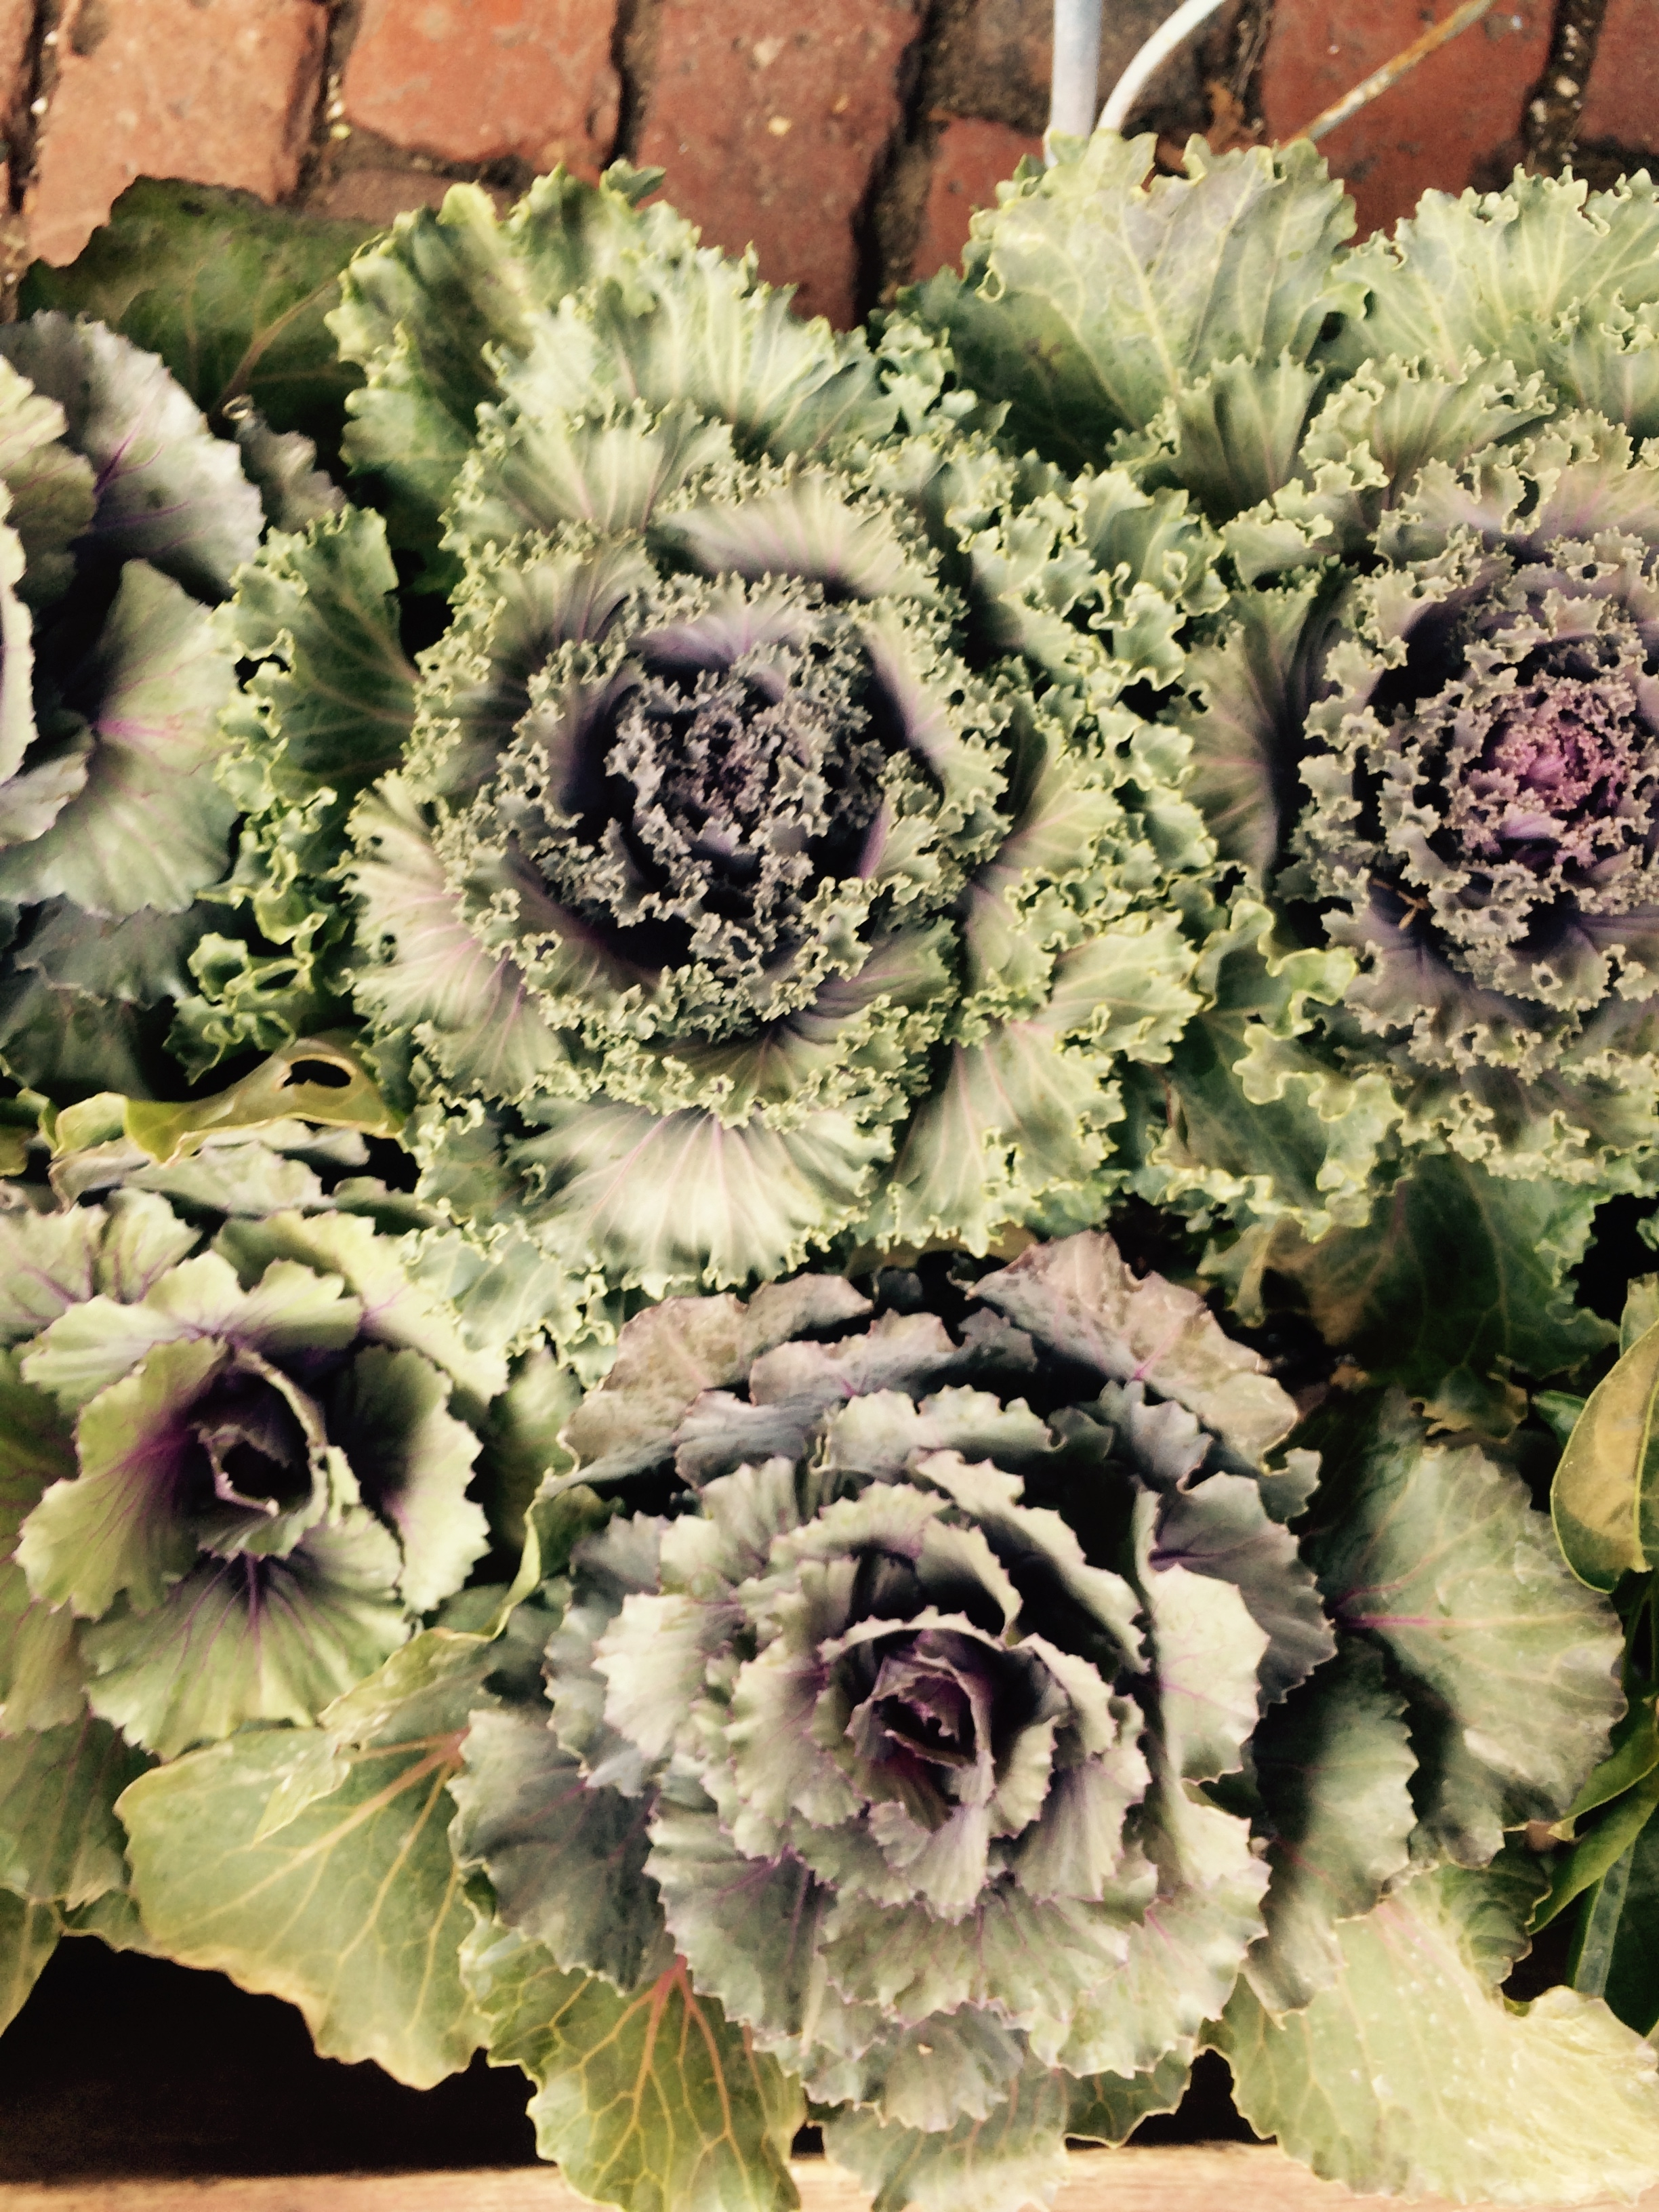 This exquisite decorative kale has a vibrate purple center which pairs well with tons of other autumnal colors.